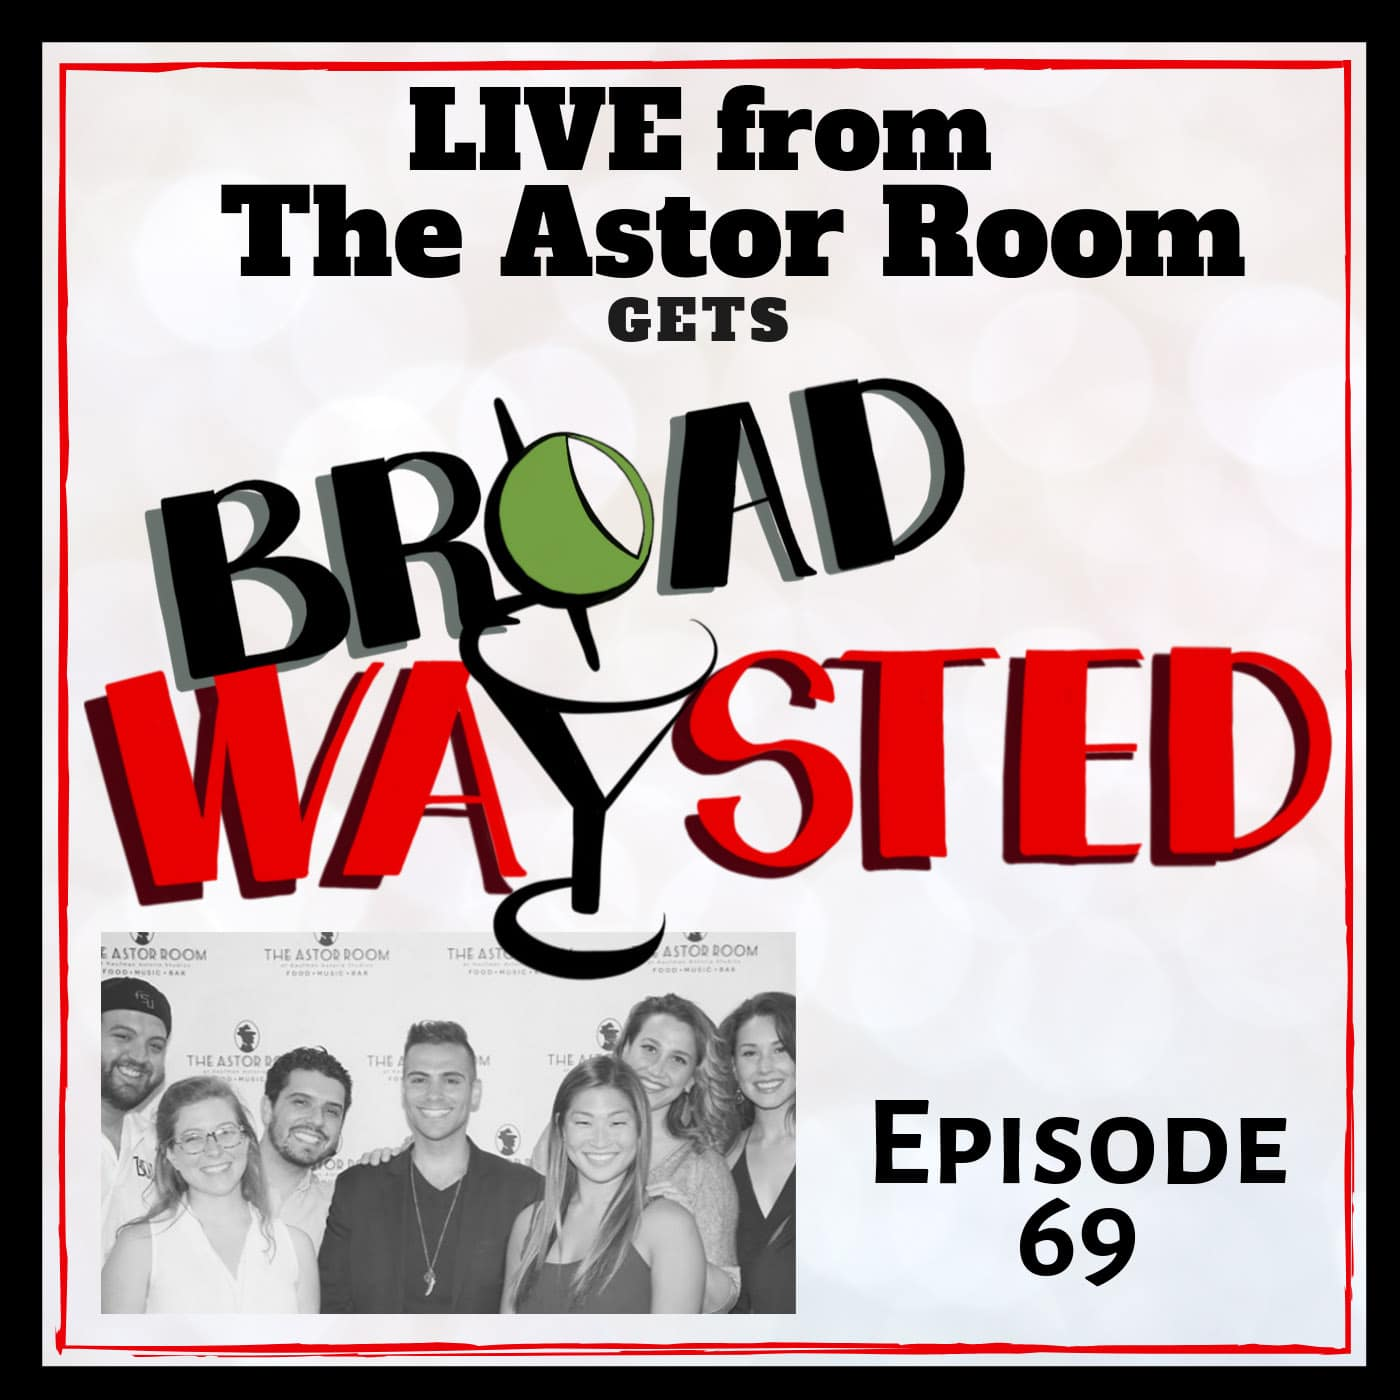 Broadwaysted Ep 69 LIVE from the Astor Room